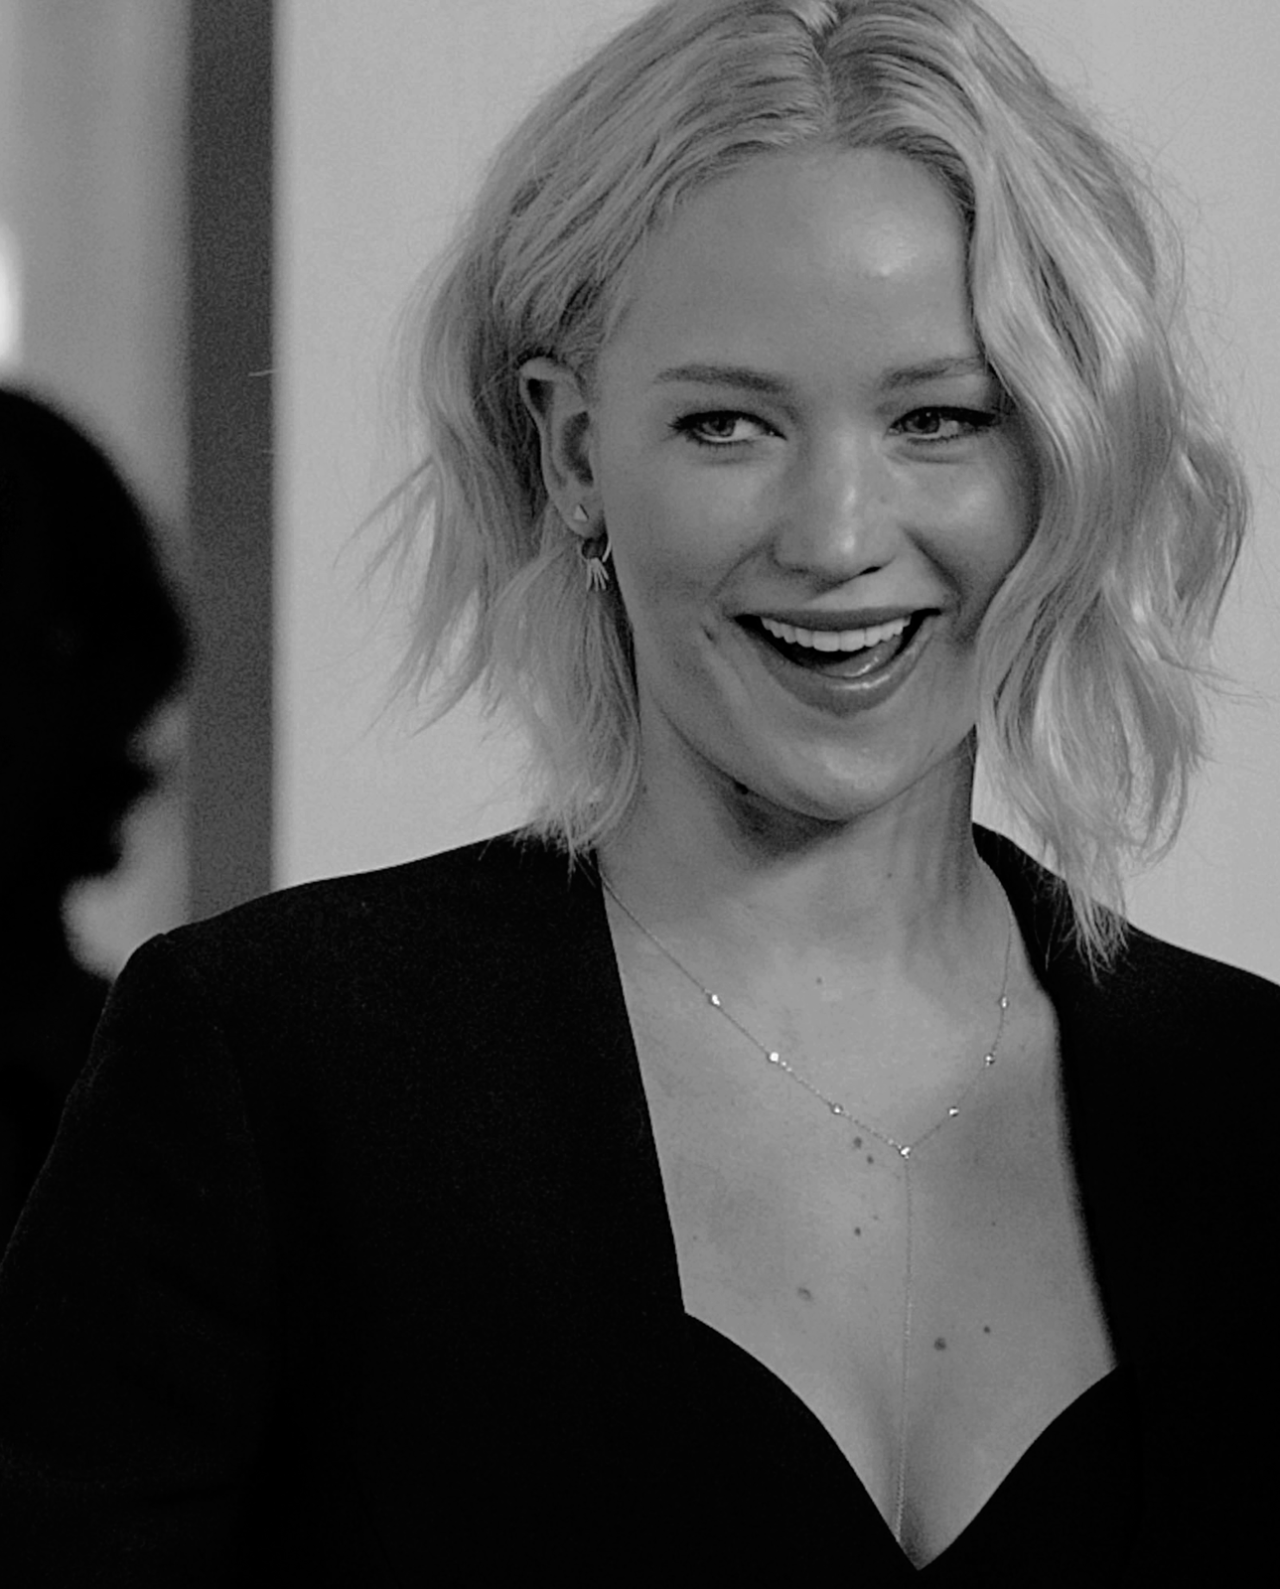 Jennifer Lawrence attends the 88th Annual Academy Awards Nominee Luncheon in Beverly Hills, California.